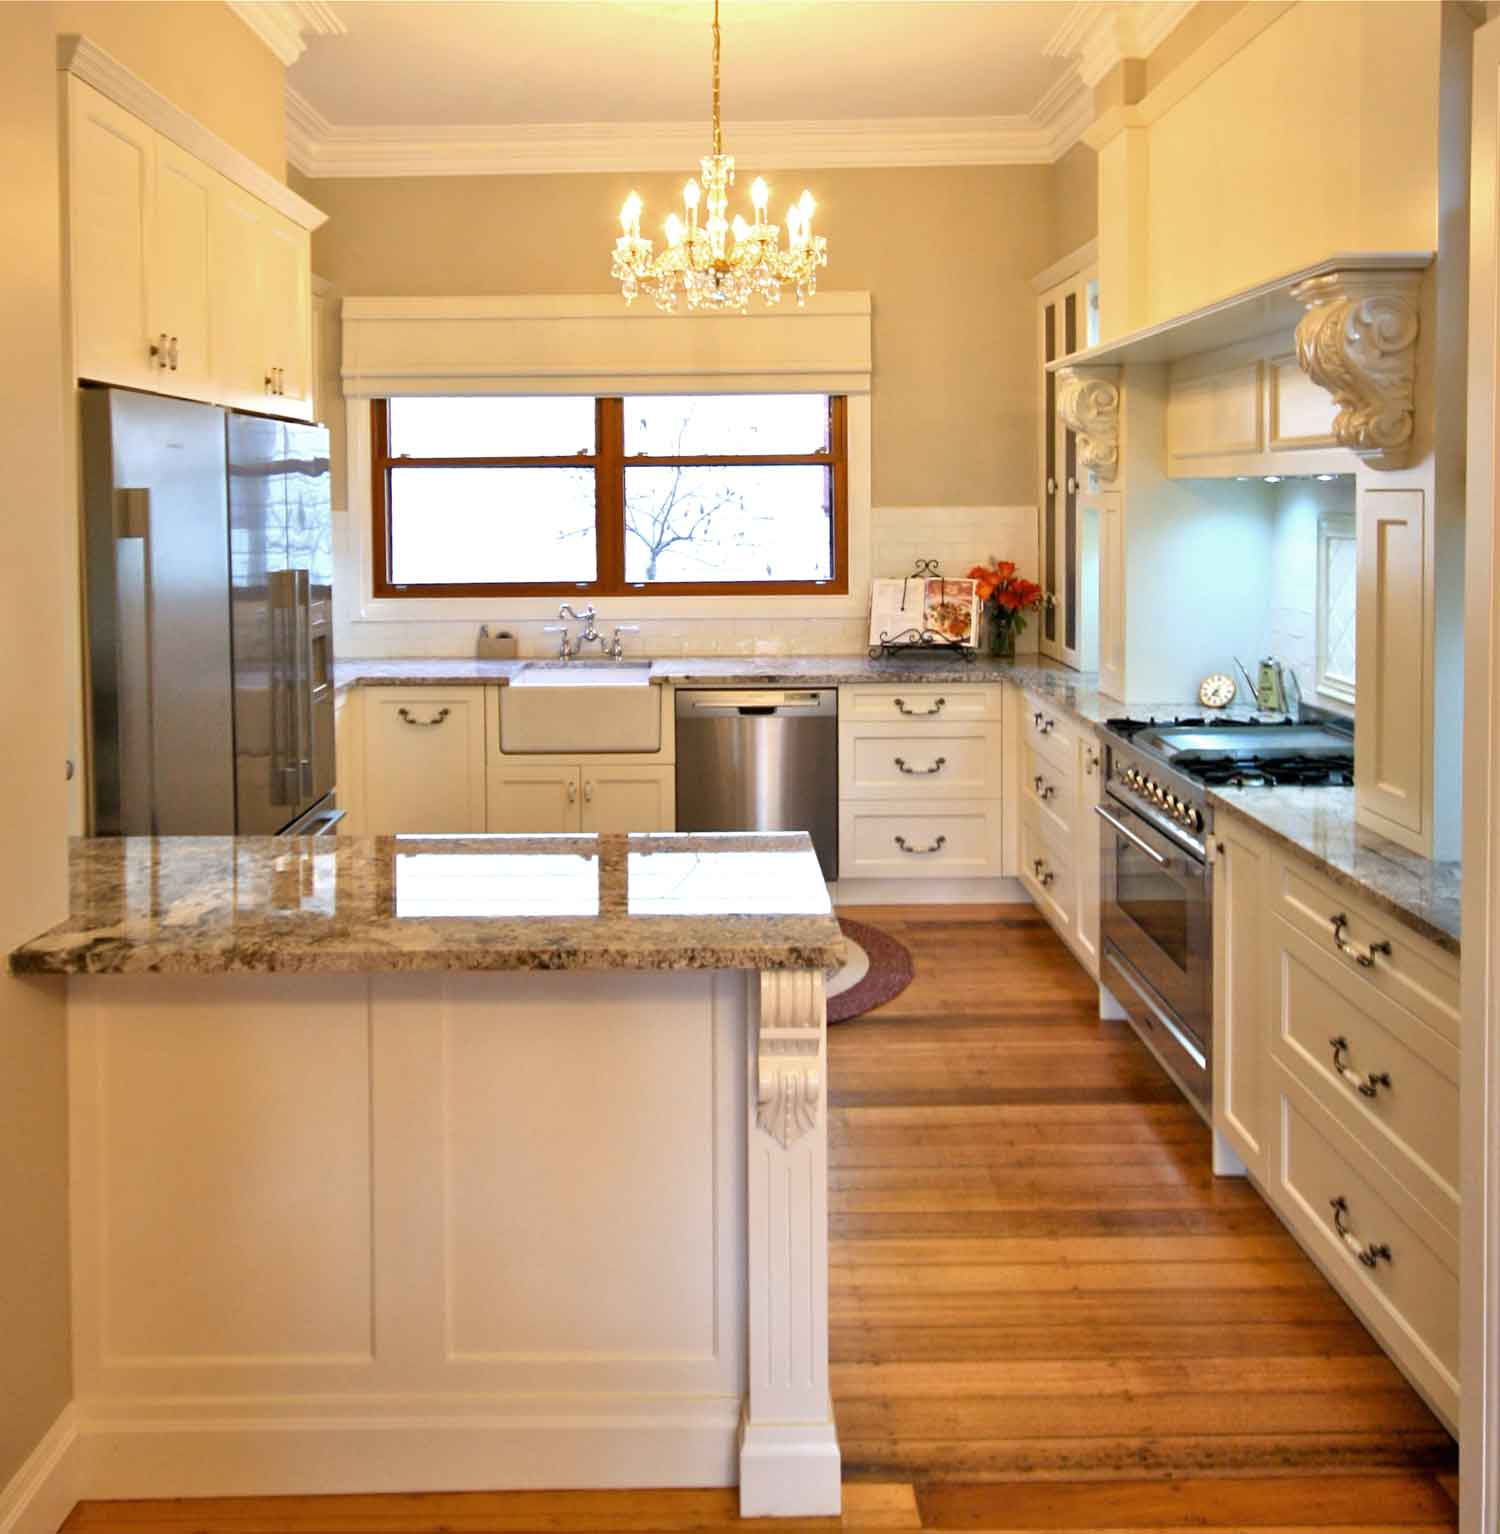 Painted Kitchen Ideas For Walls: Best Interior